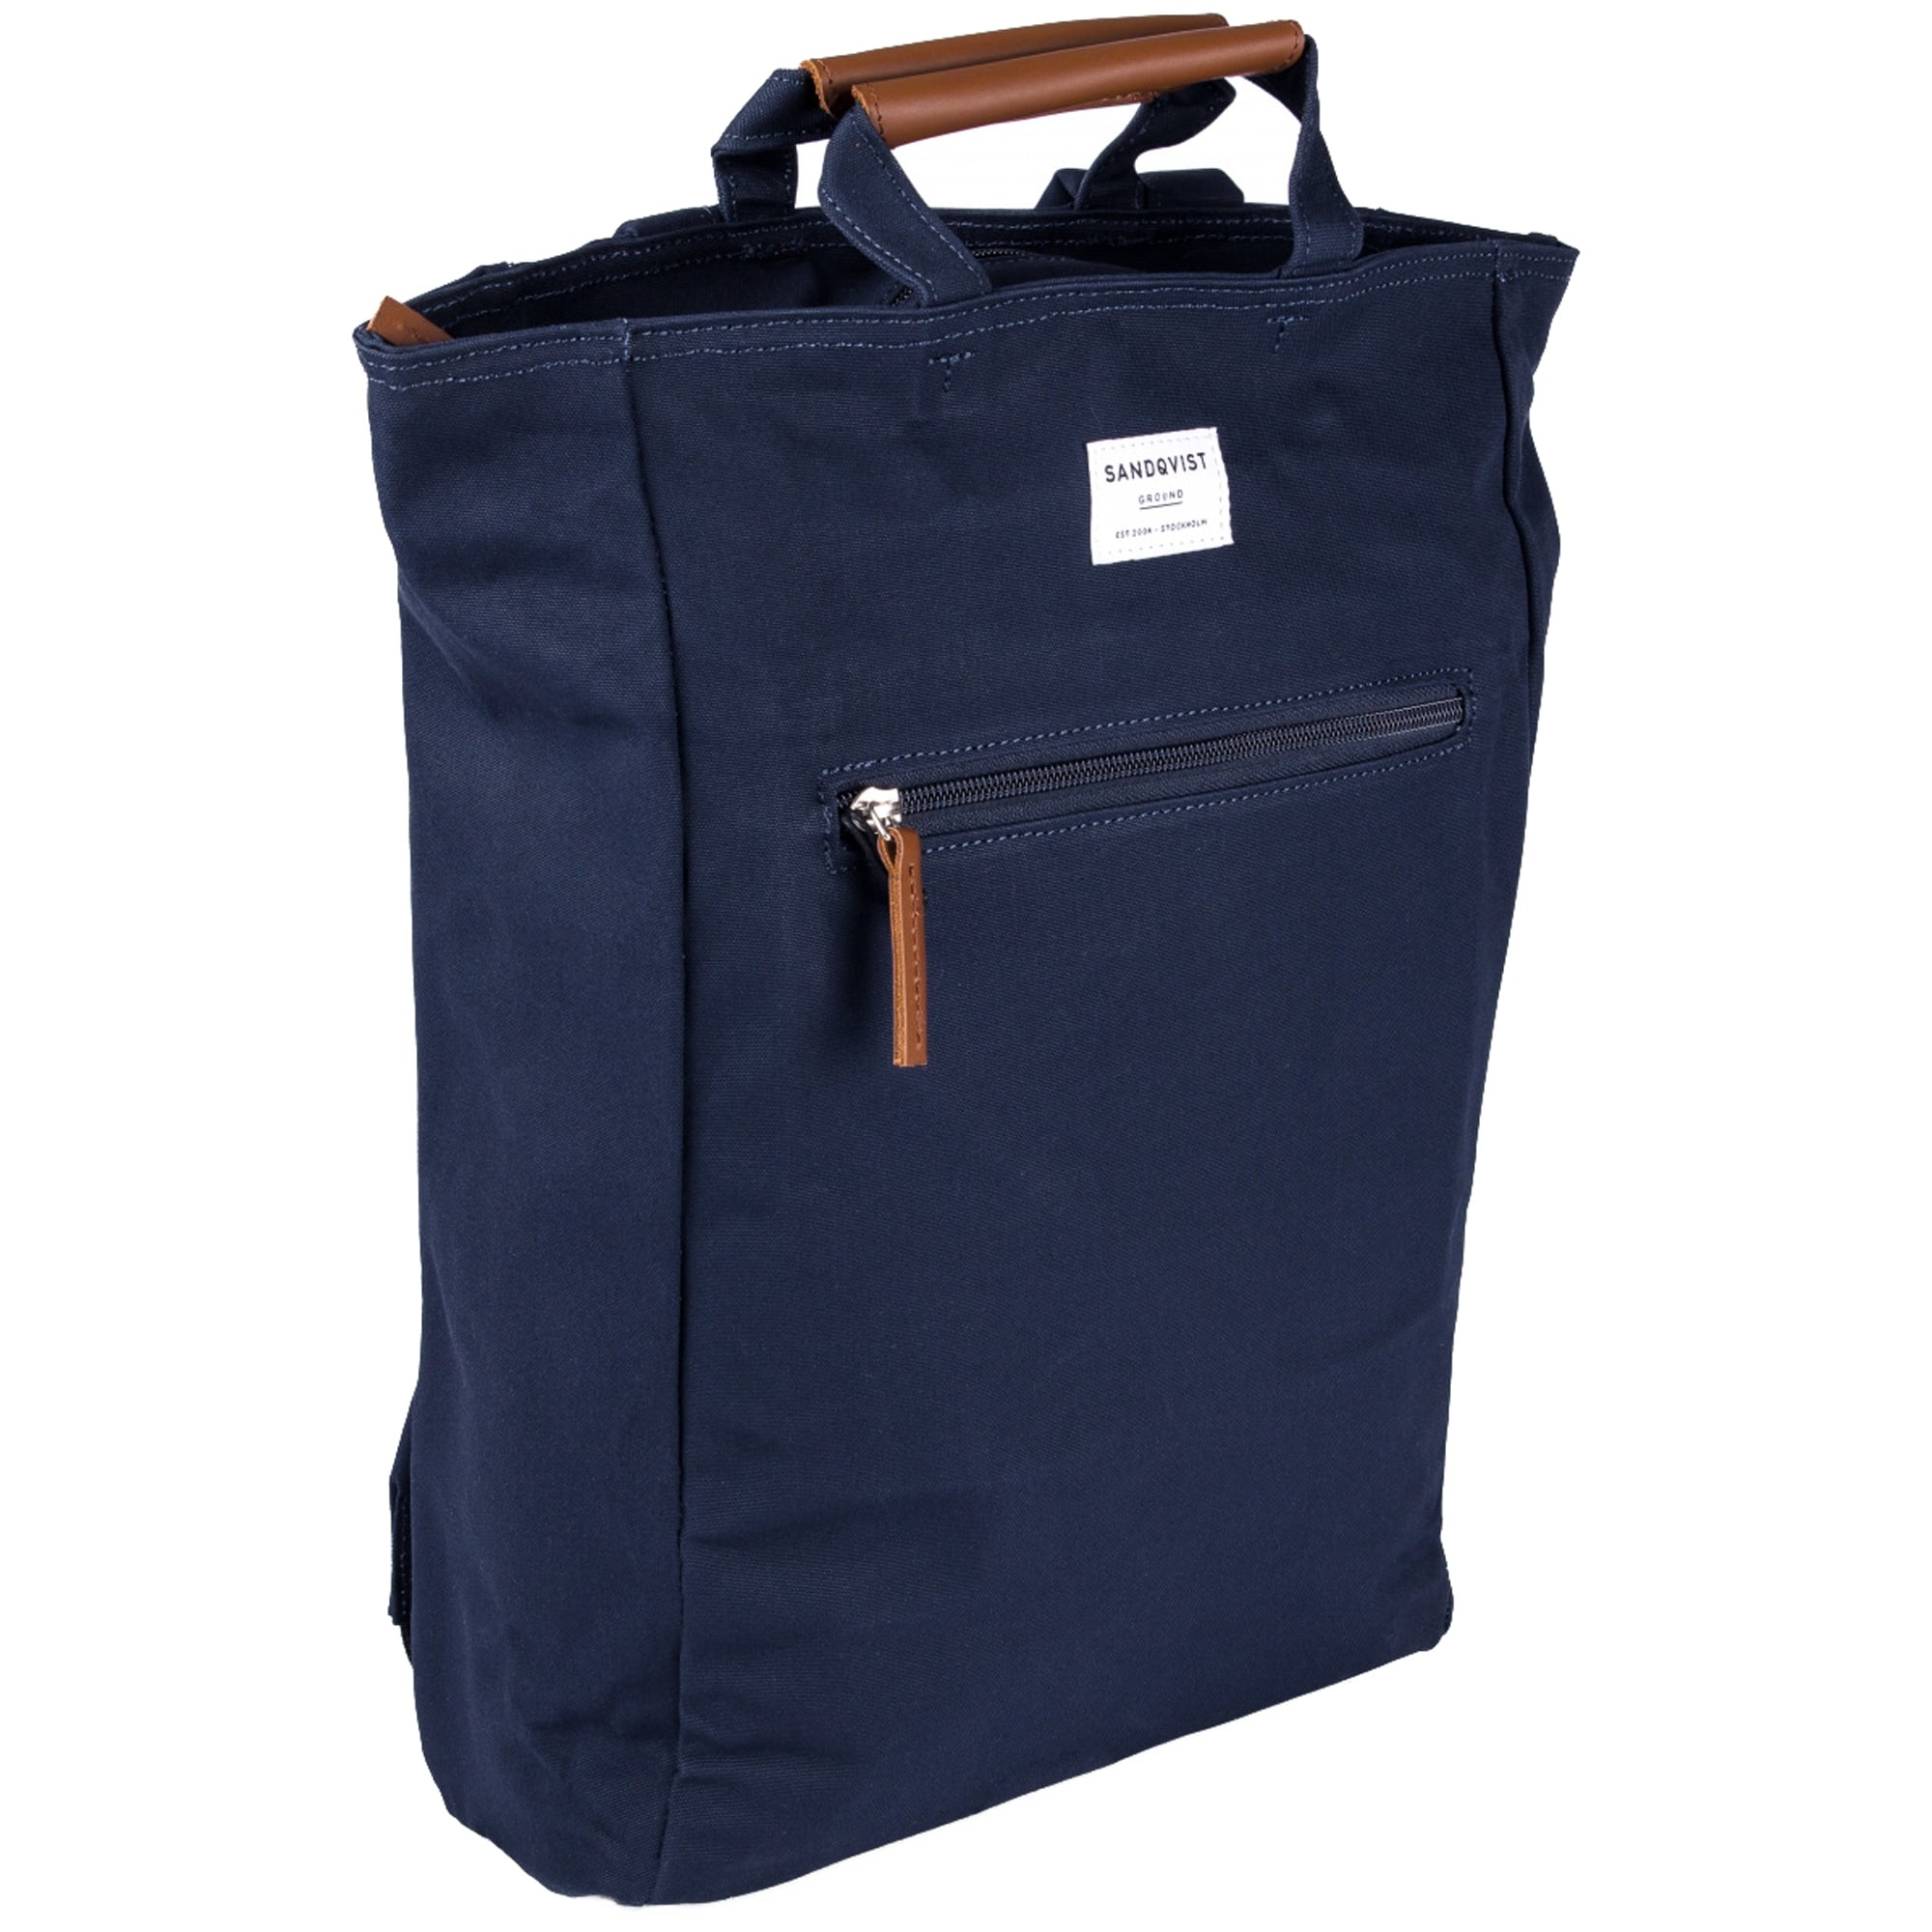 a18732de1 Sandqvist Ground Tony Leather Backpack (Blue) at Dandy Fellow